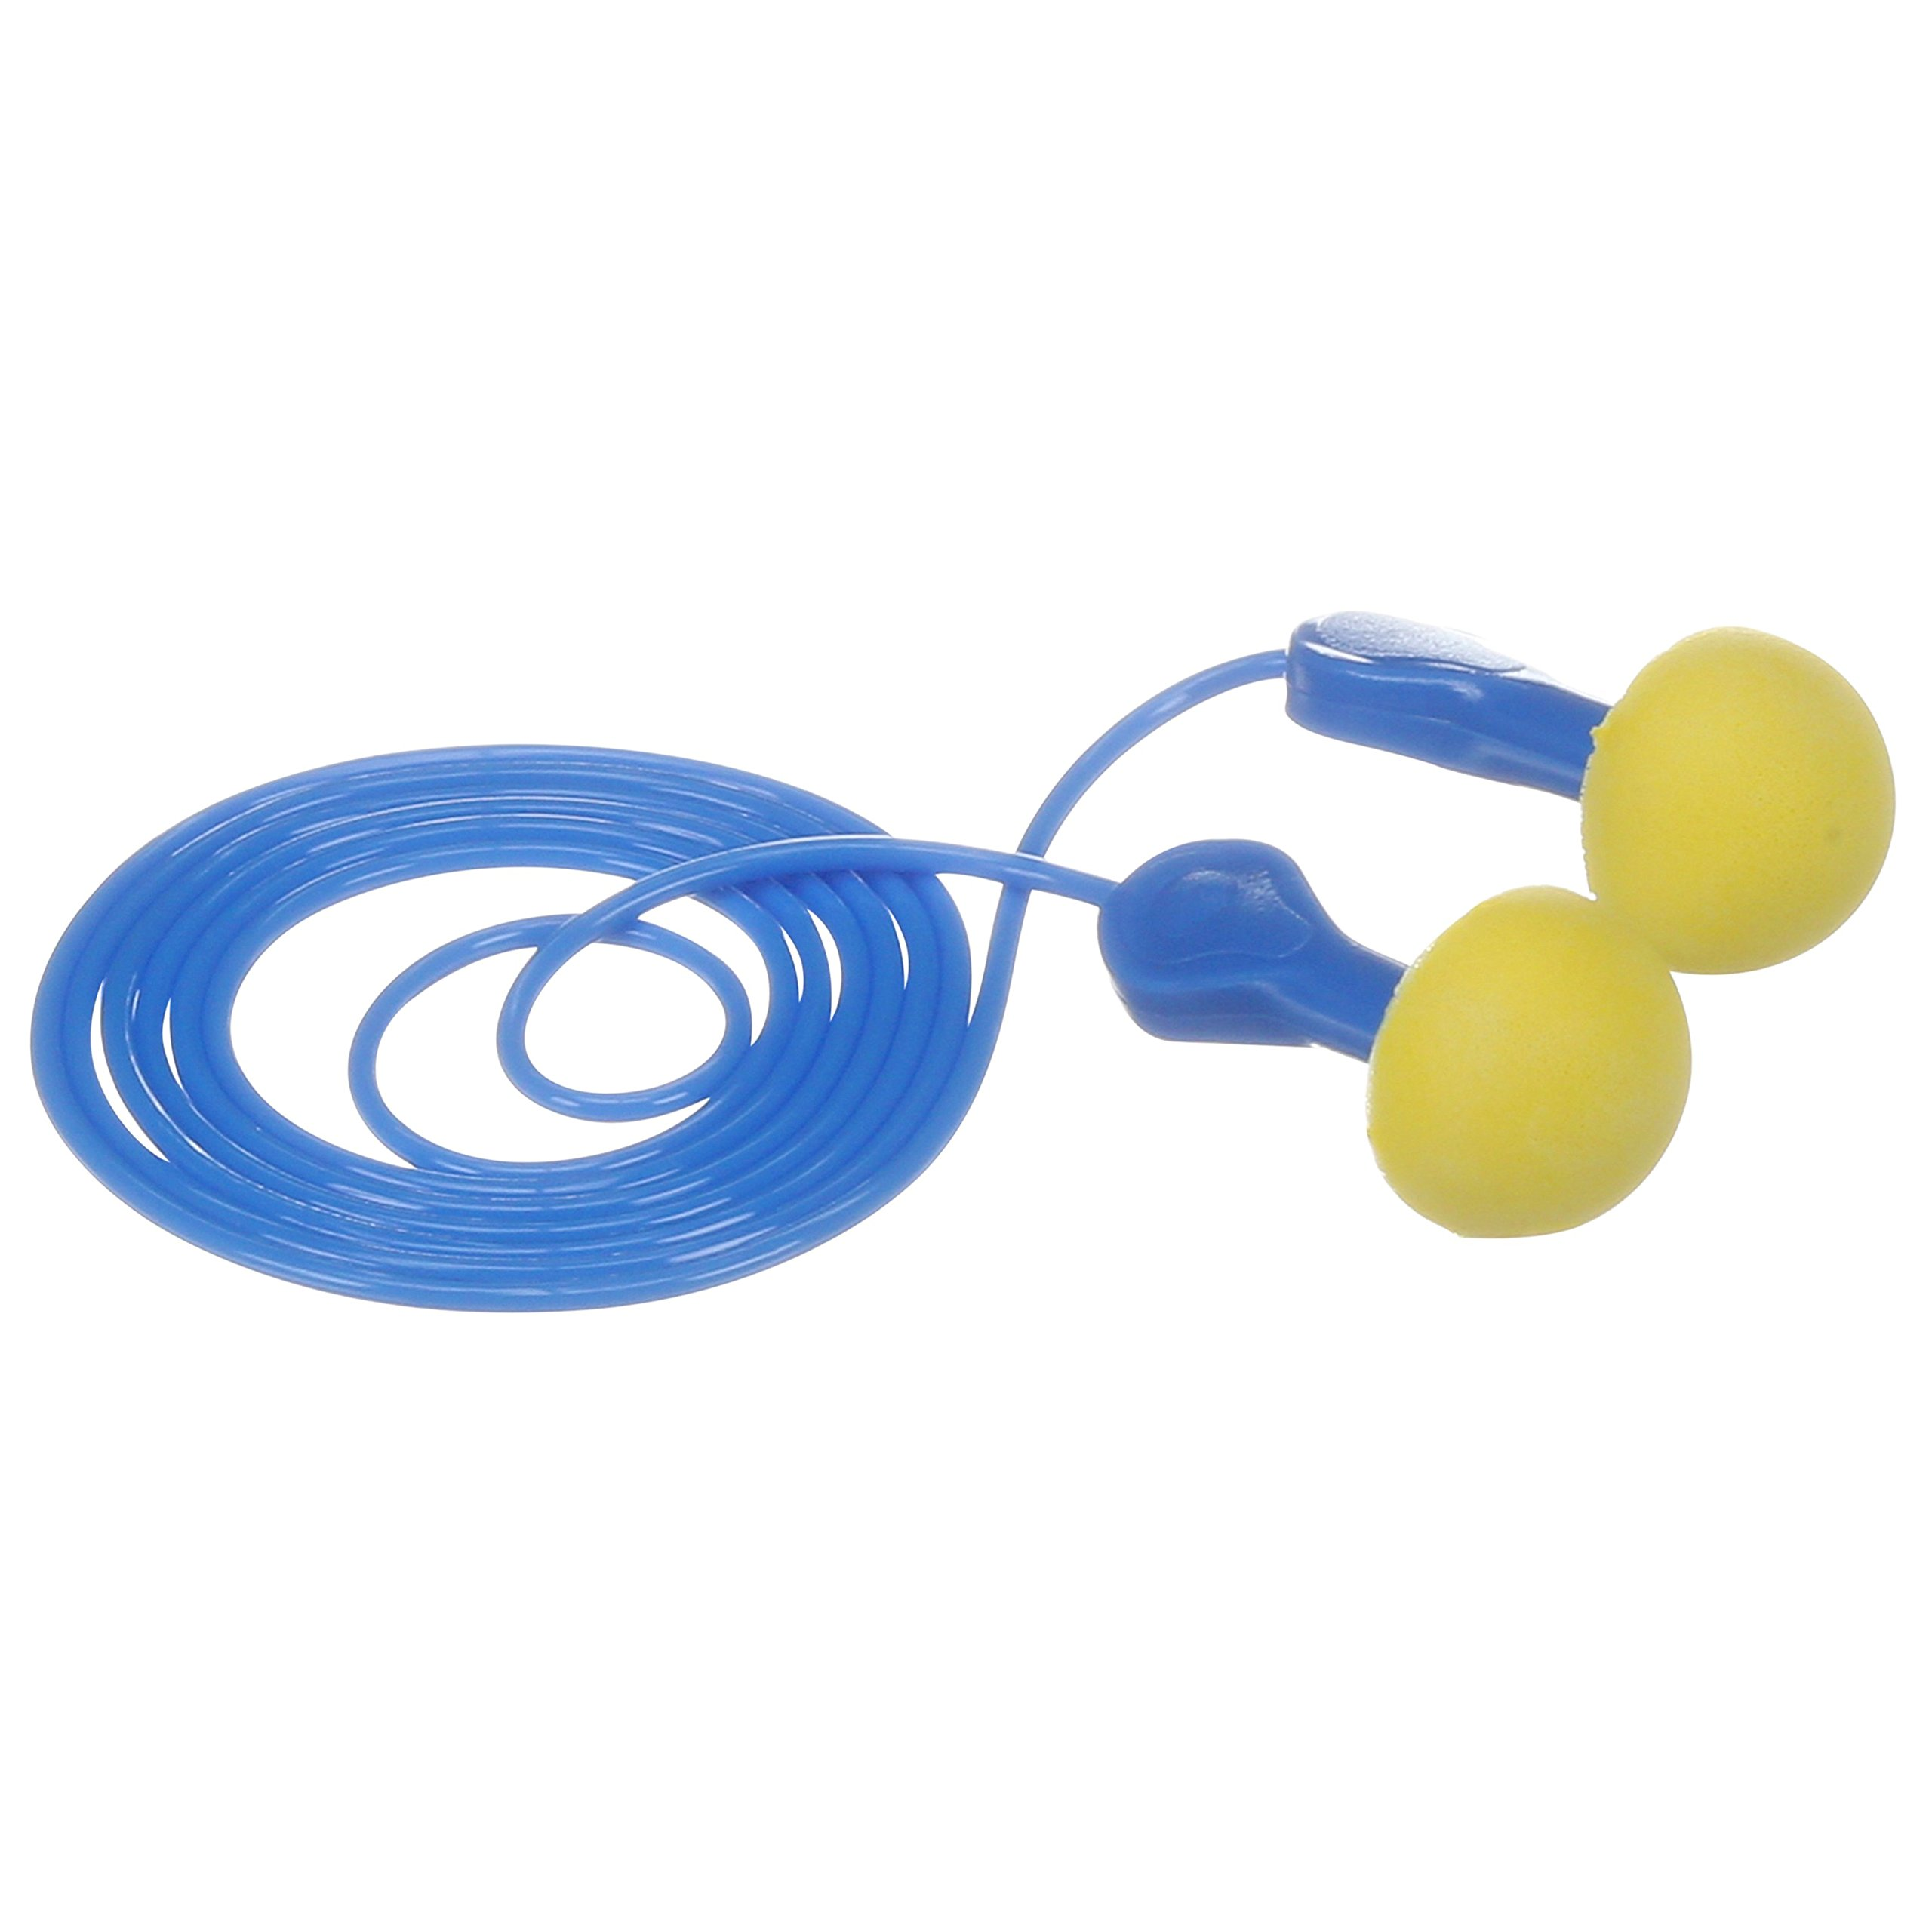 3M E-A-R Express Pod Plugs Corded Earplugs, Hearing Conservation Blue Grips 311-1114 in Pillow Pack (Pack of 100) by 3M Personal Protective Equipment (Image #3)